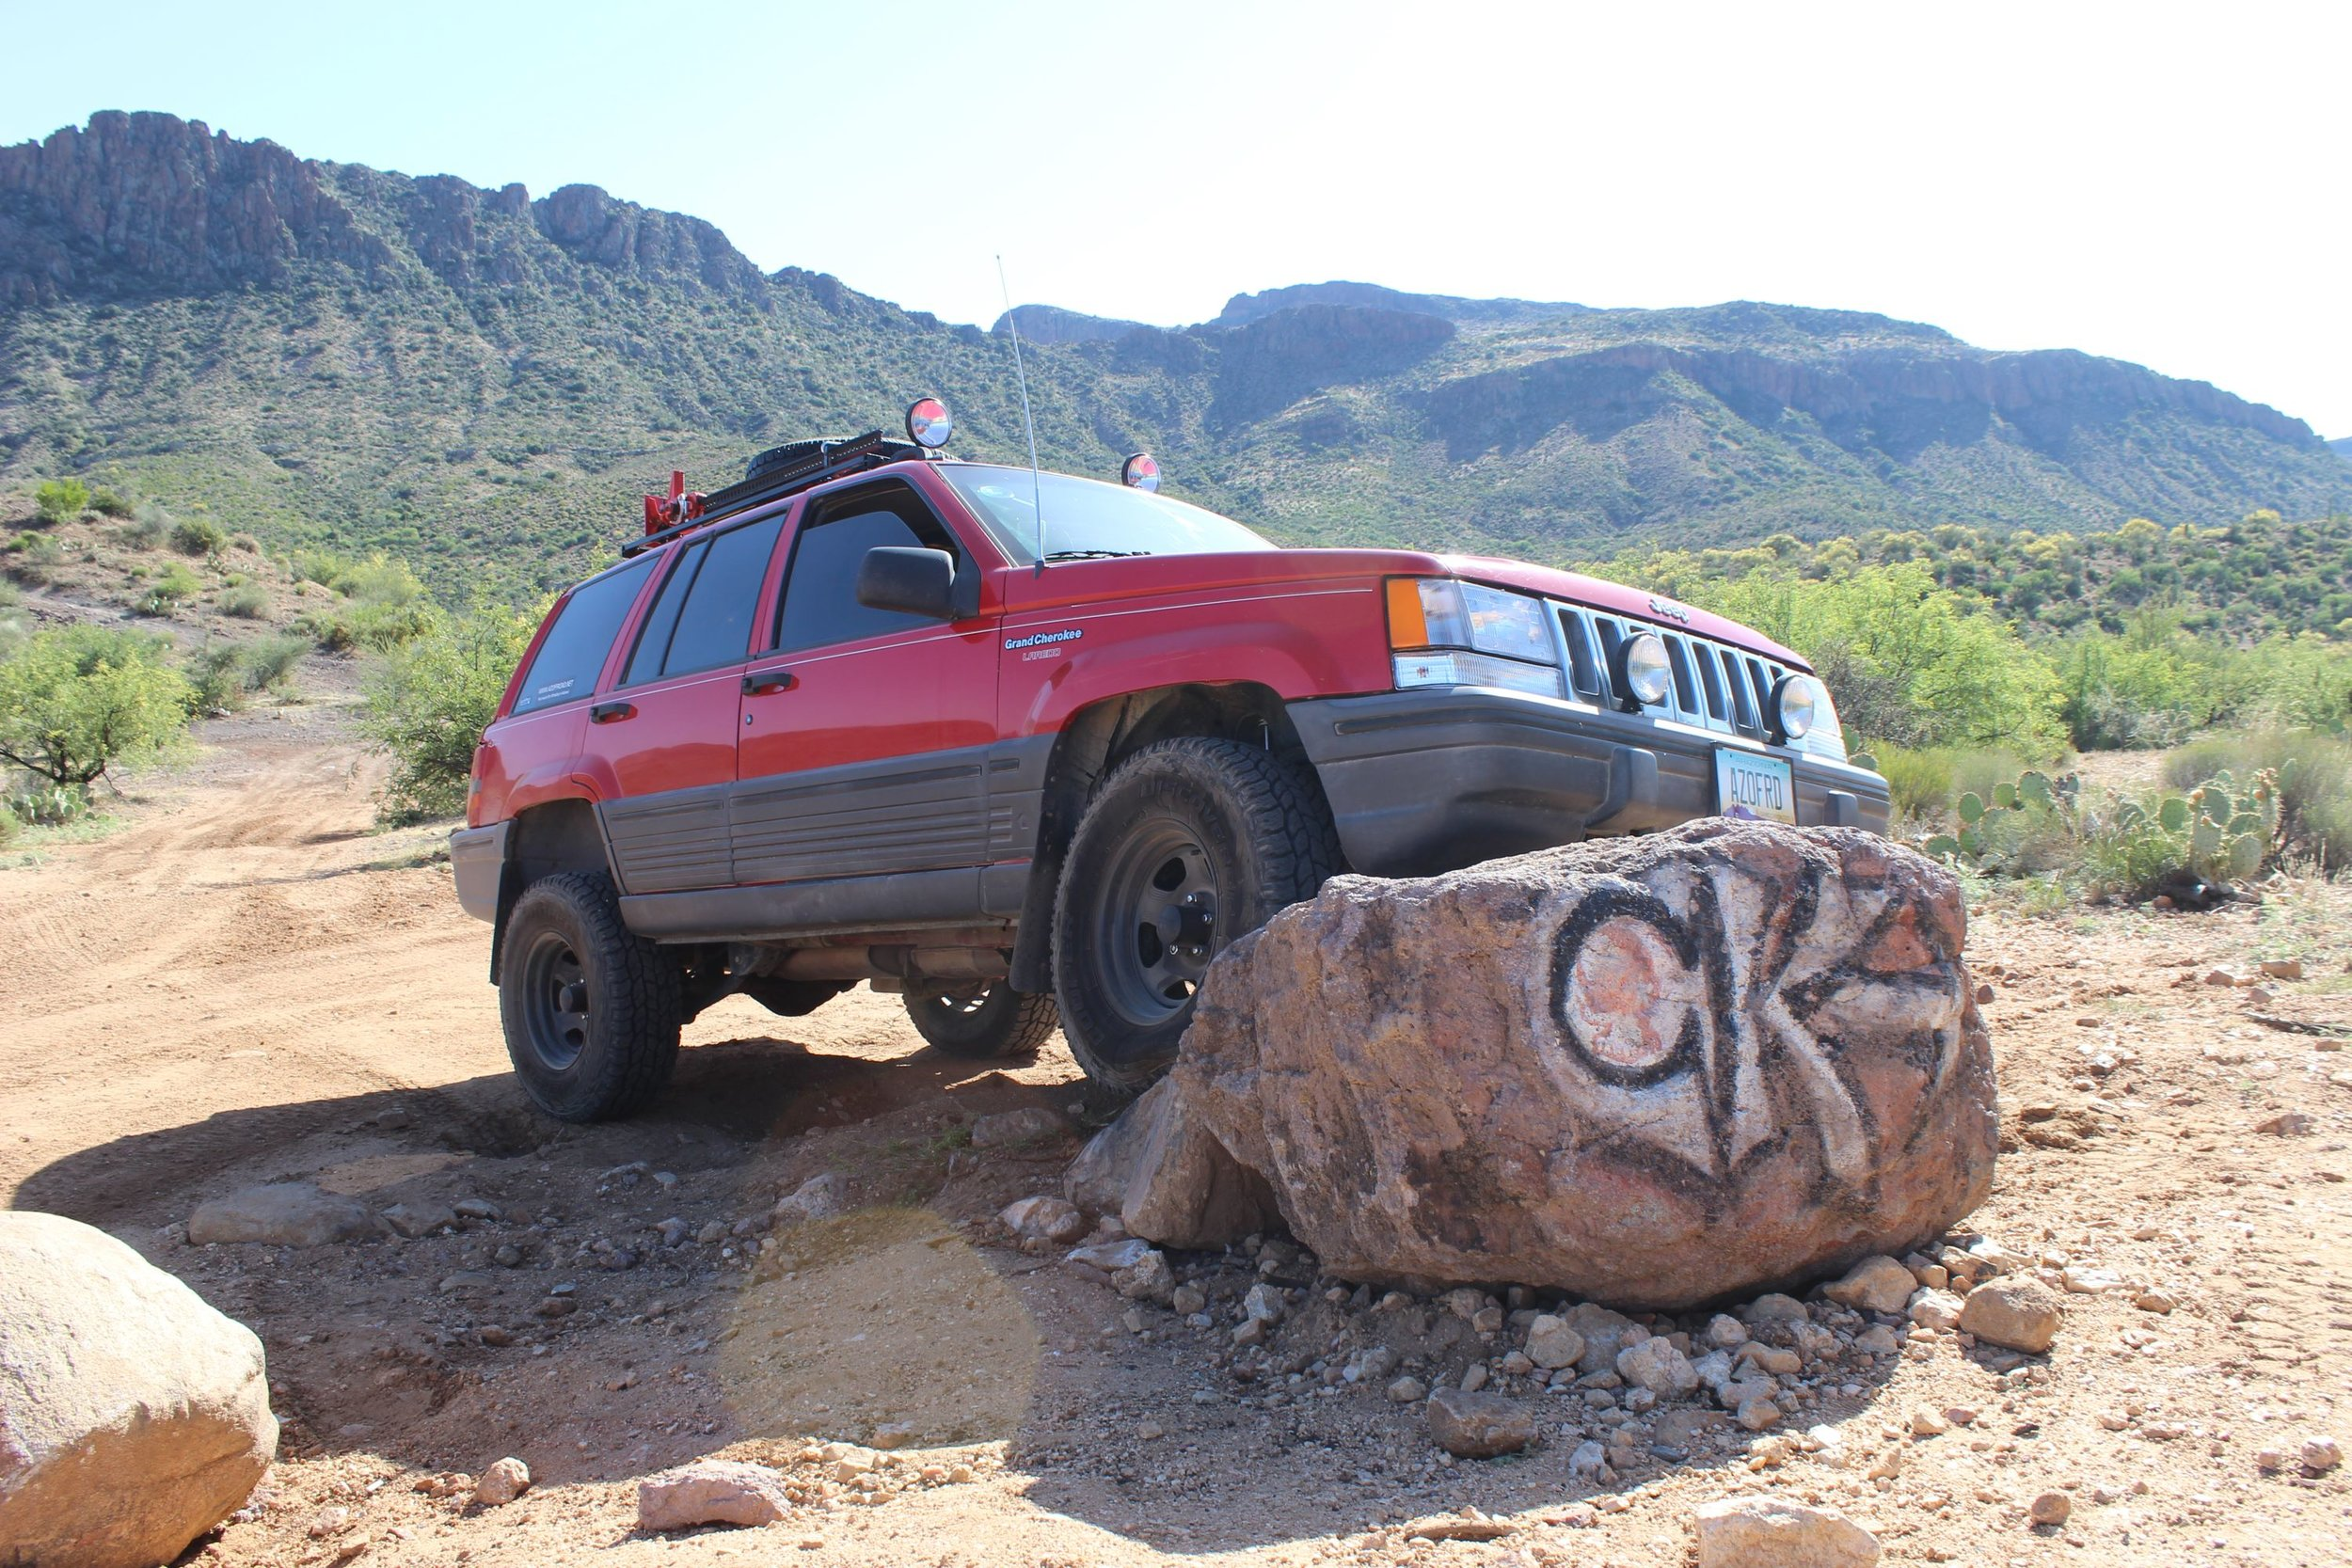 Stopping for a break at CK rock along the Backway to Crown King